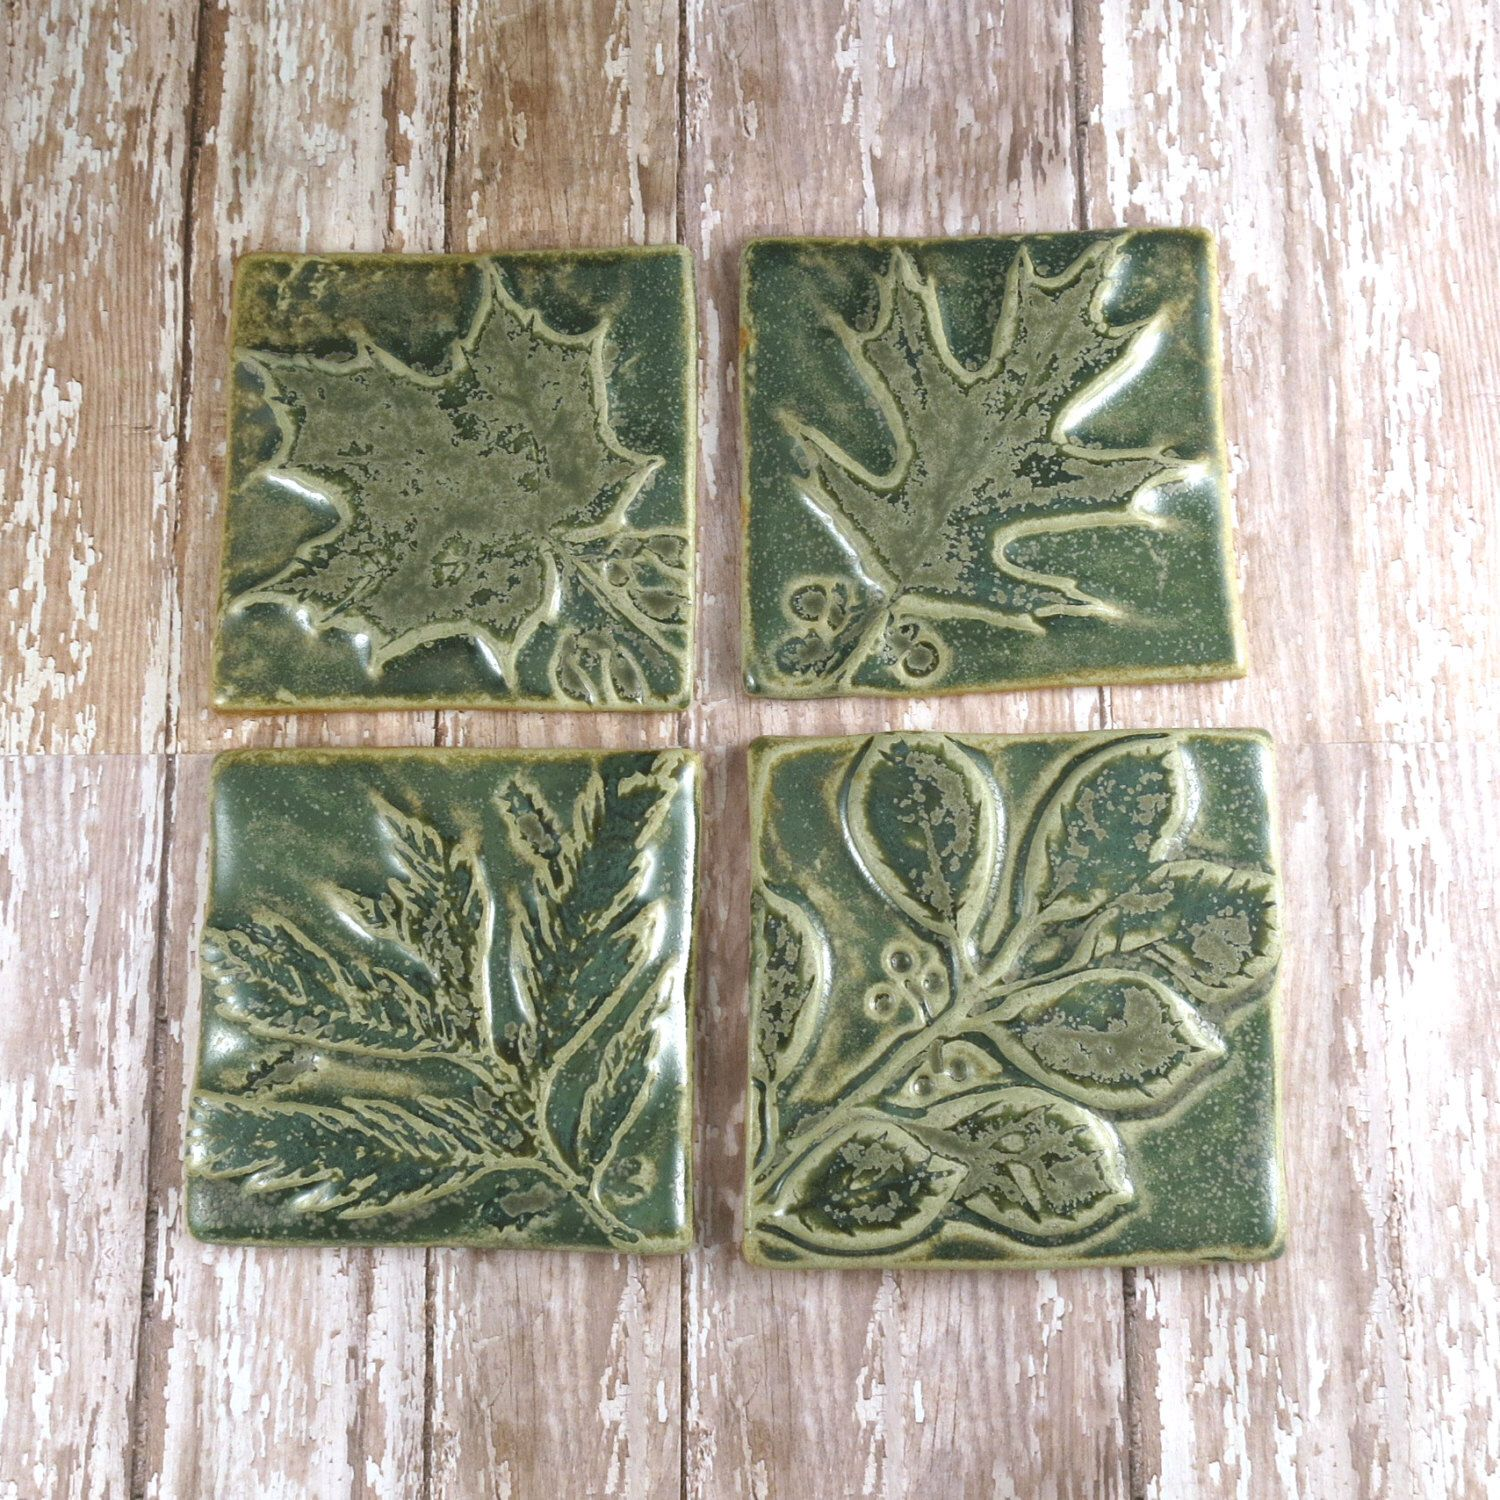 Ceramic Tile Pottery Handmade Accent Tile Wall Art Kitchen